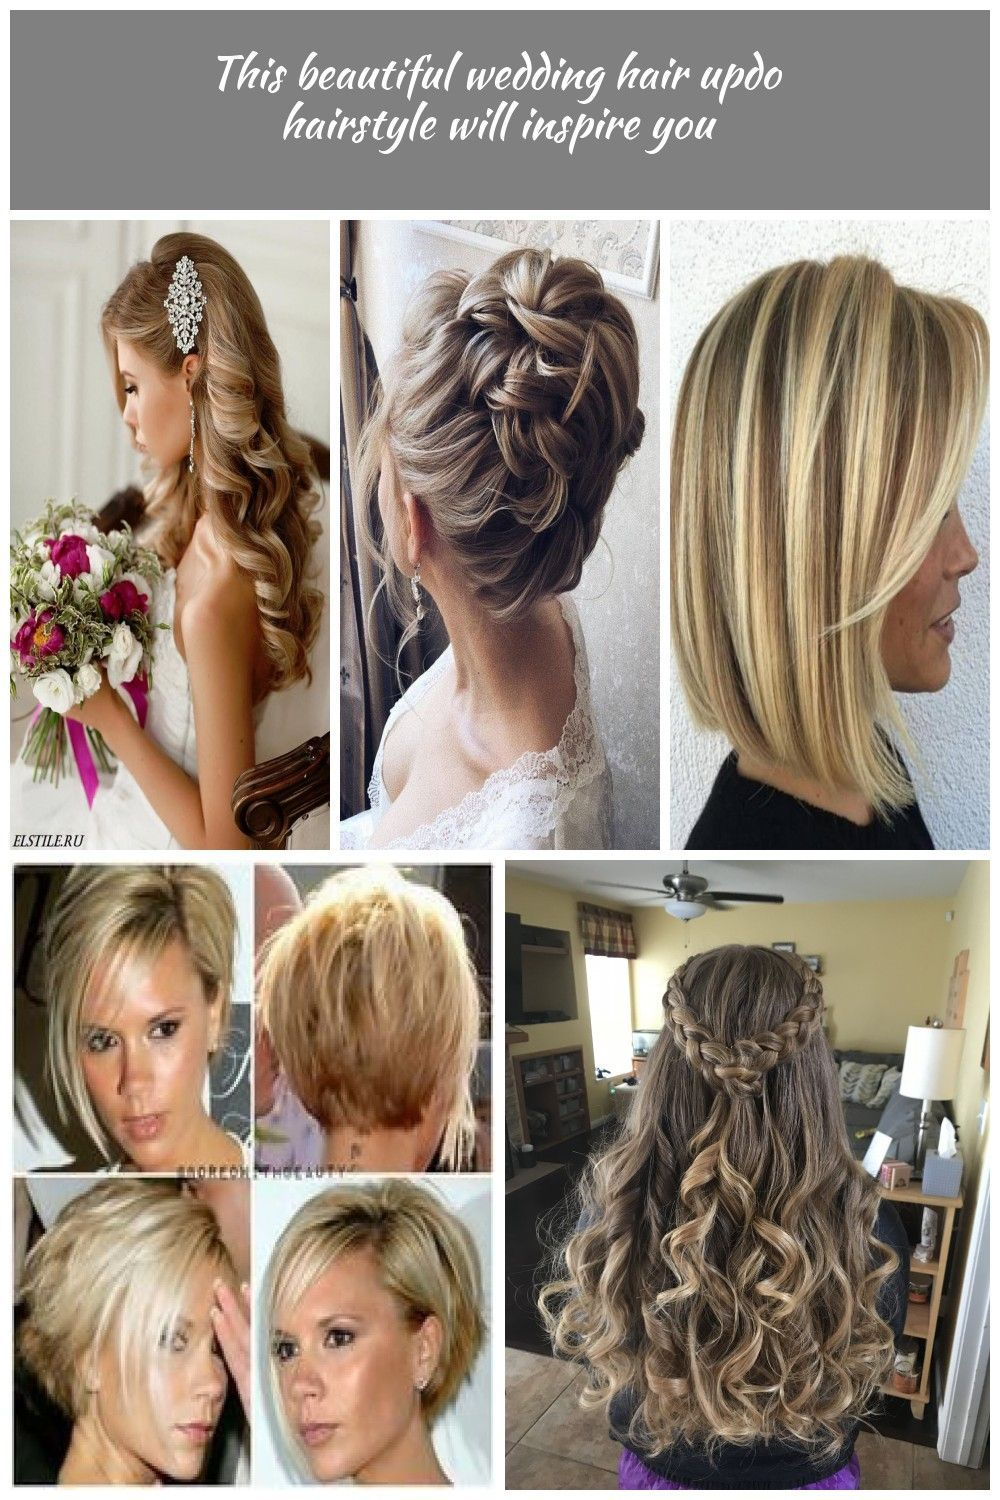 Half up half down wedding hairstyles updo for long hair for medium length for bridemaids #hair #hairstyles #beauty #wedding #weddinghairstyles wedding hairstyles medium length #bridemaidshair Half up half down wedding hairstyles updo for long hair for medium length for bridemaids #hair #hairstyles #beauty #wedding #weddinghairstyles wedding hairstyles medium length #bridemaidshair